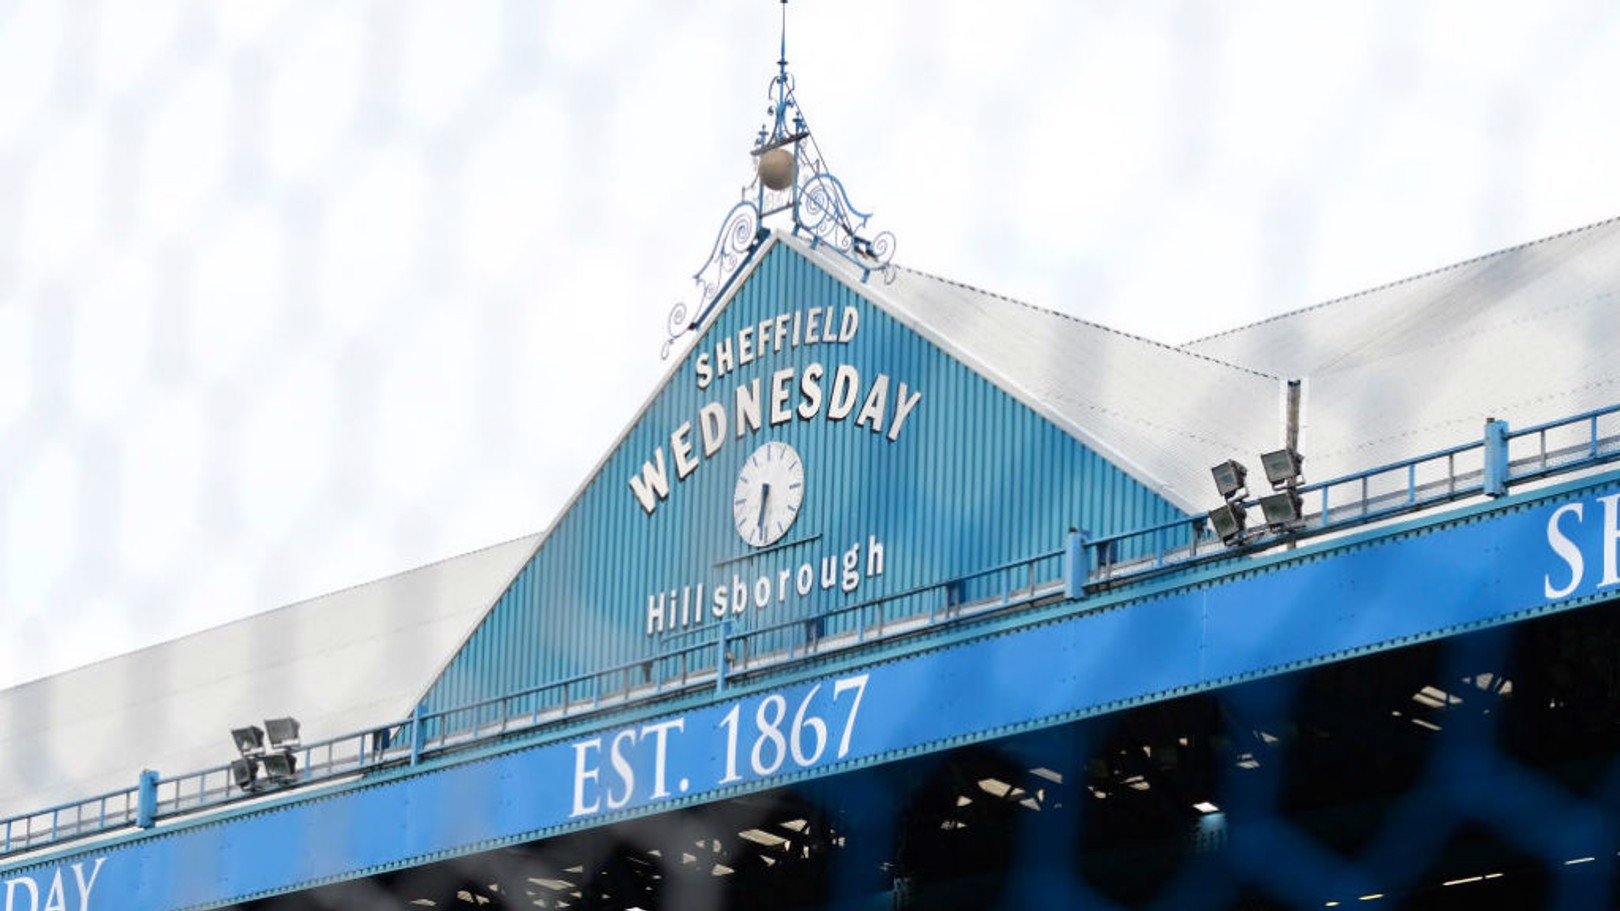 Sheffield Wednesday v City: Ticket information